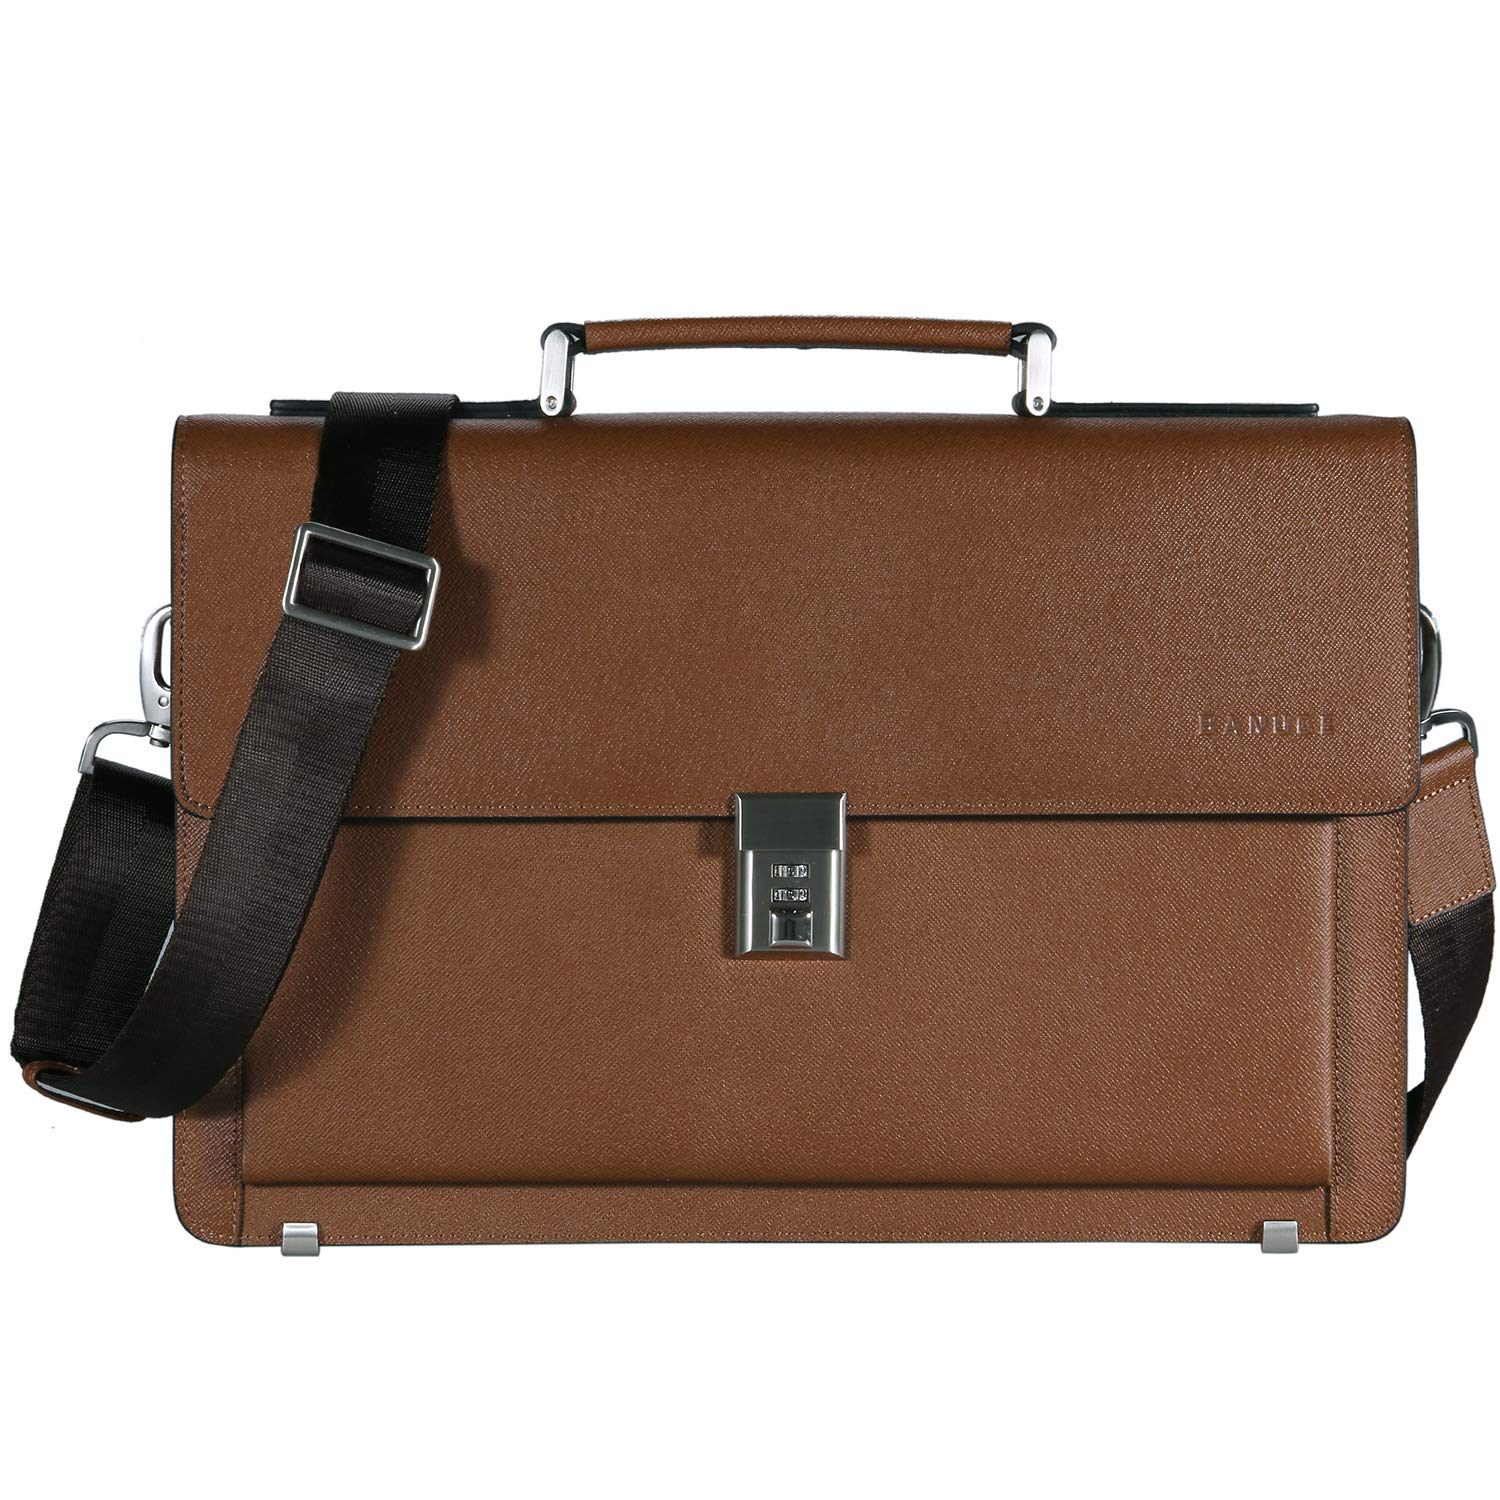 Banuce Vintage Real Leather Locking Briefcase Attache Case Men Business Legal Excutive Tote Messenger Laptop Bag